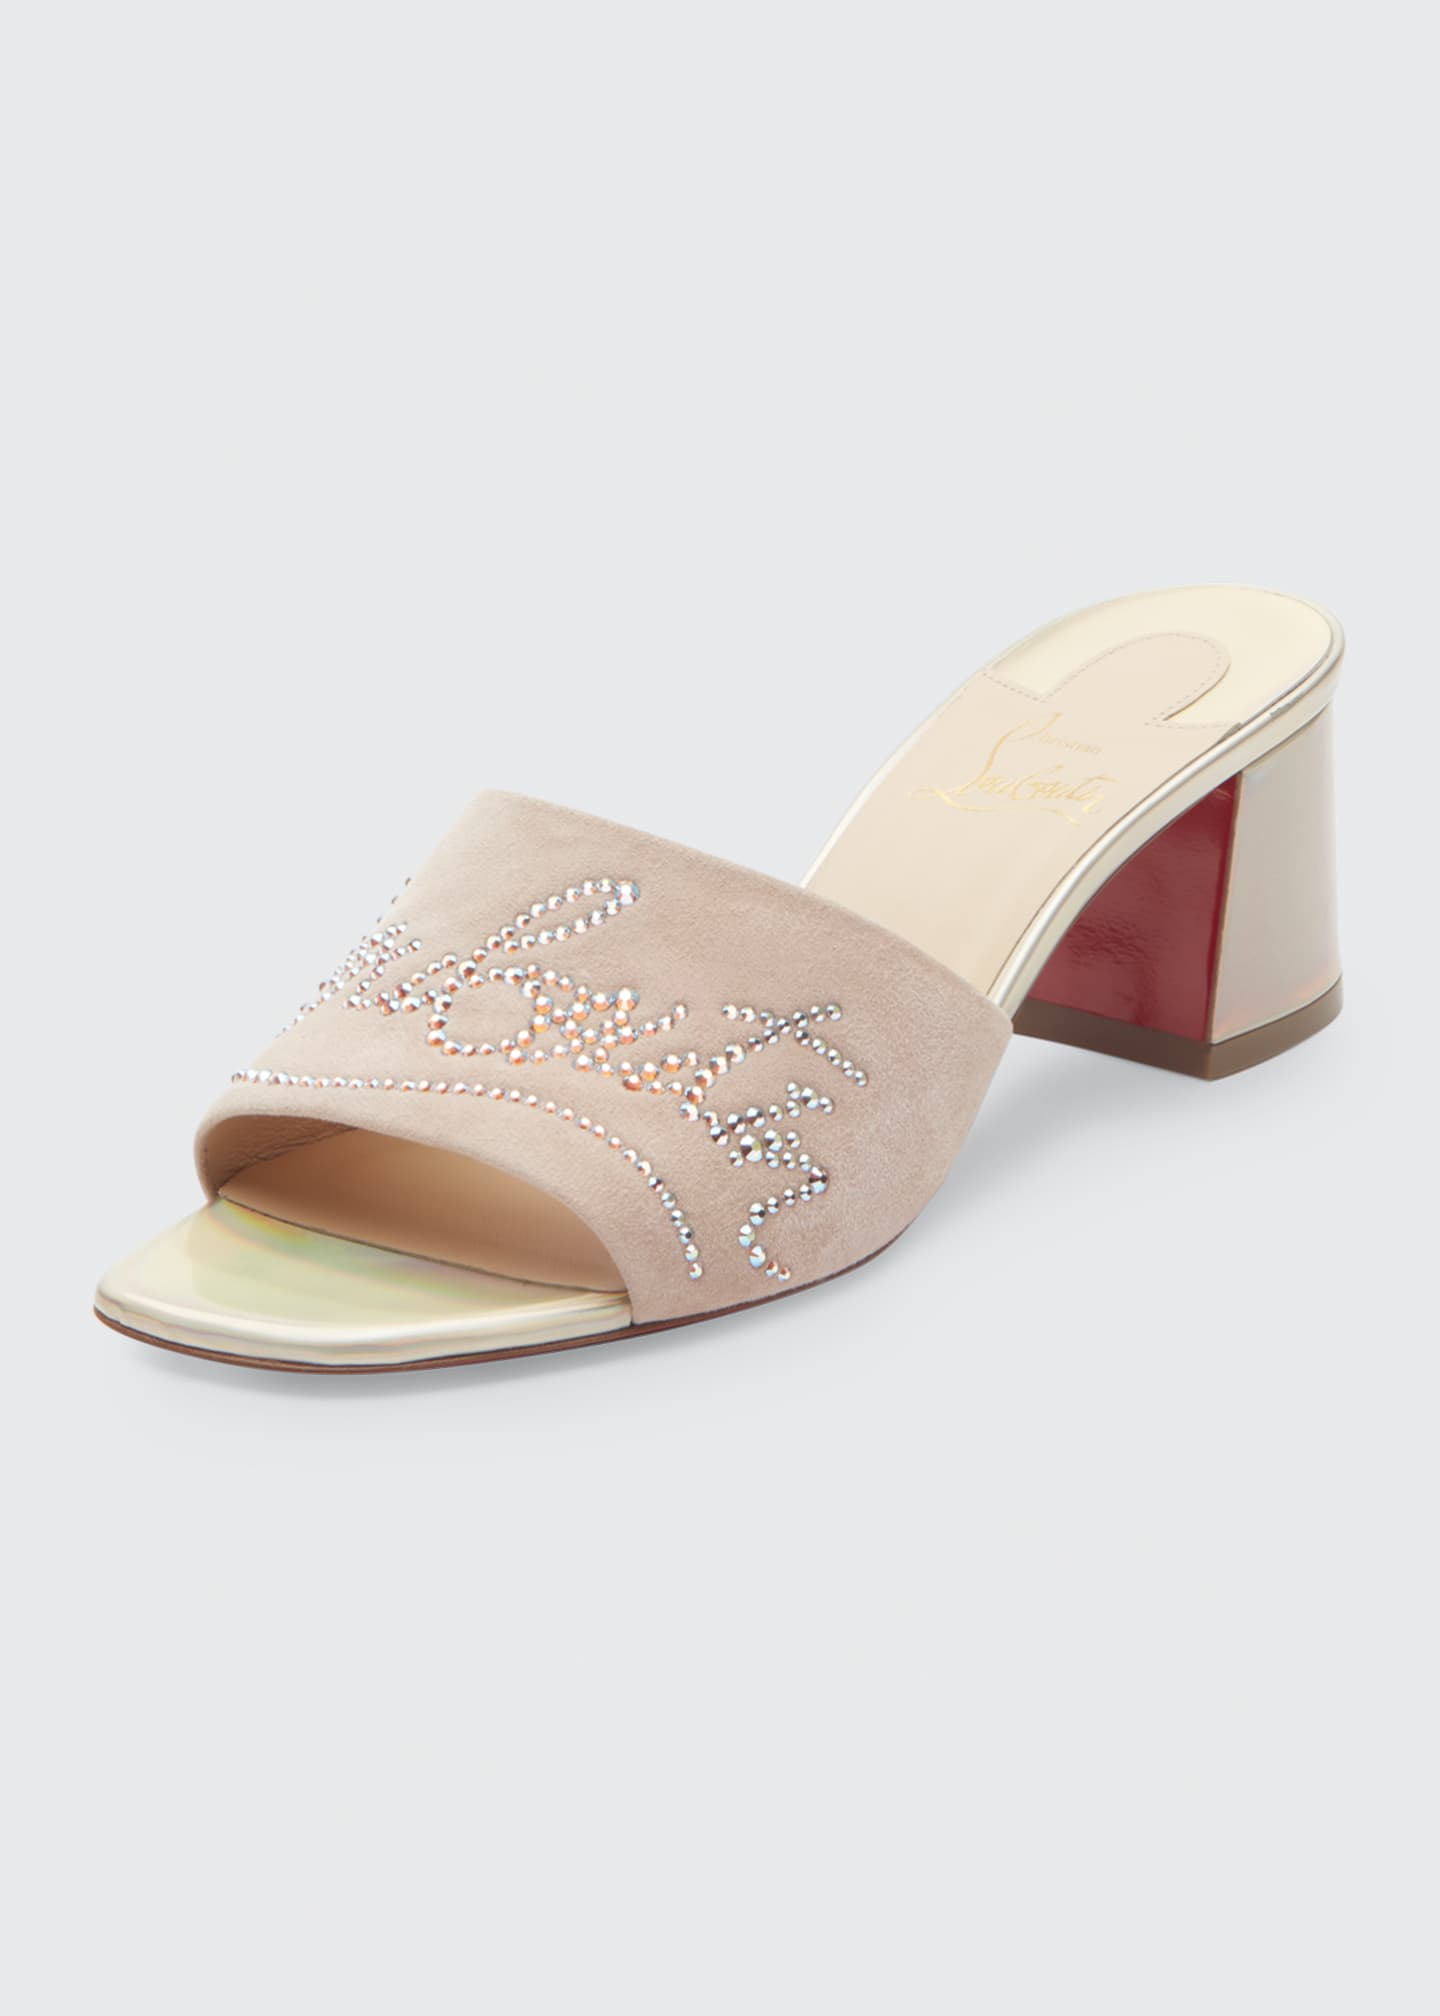 Image 2 of 3: Dear Home 55 Red Sole Slide Sandals